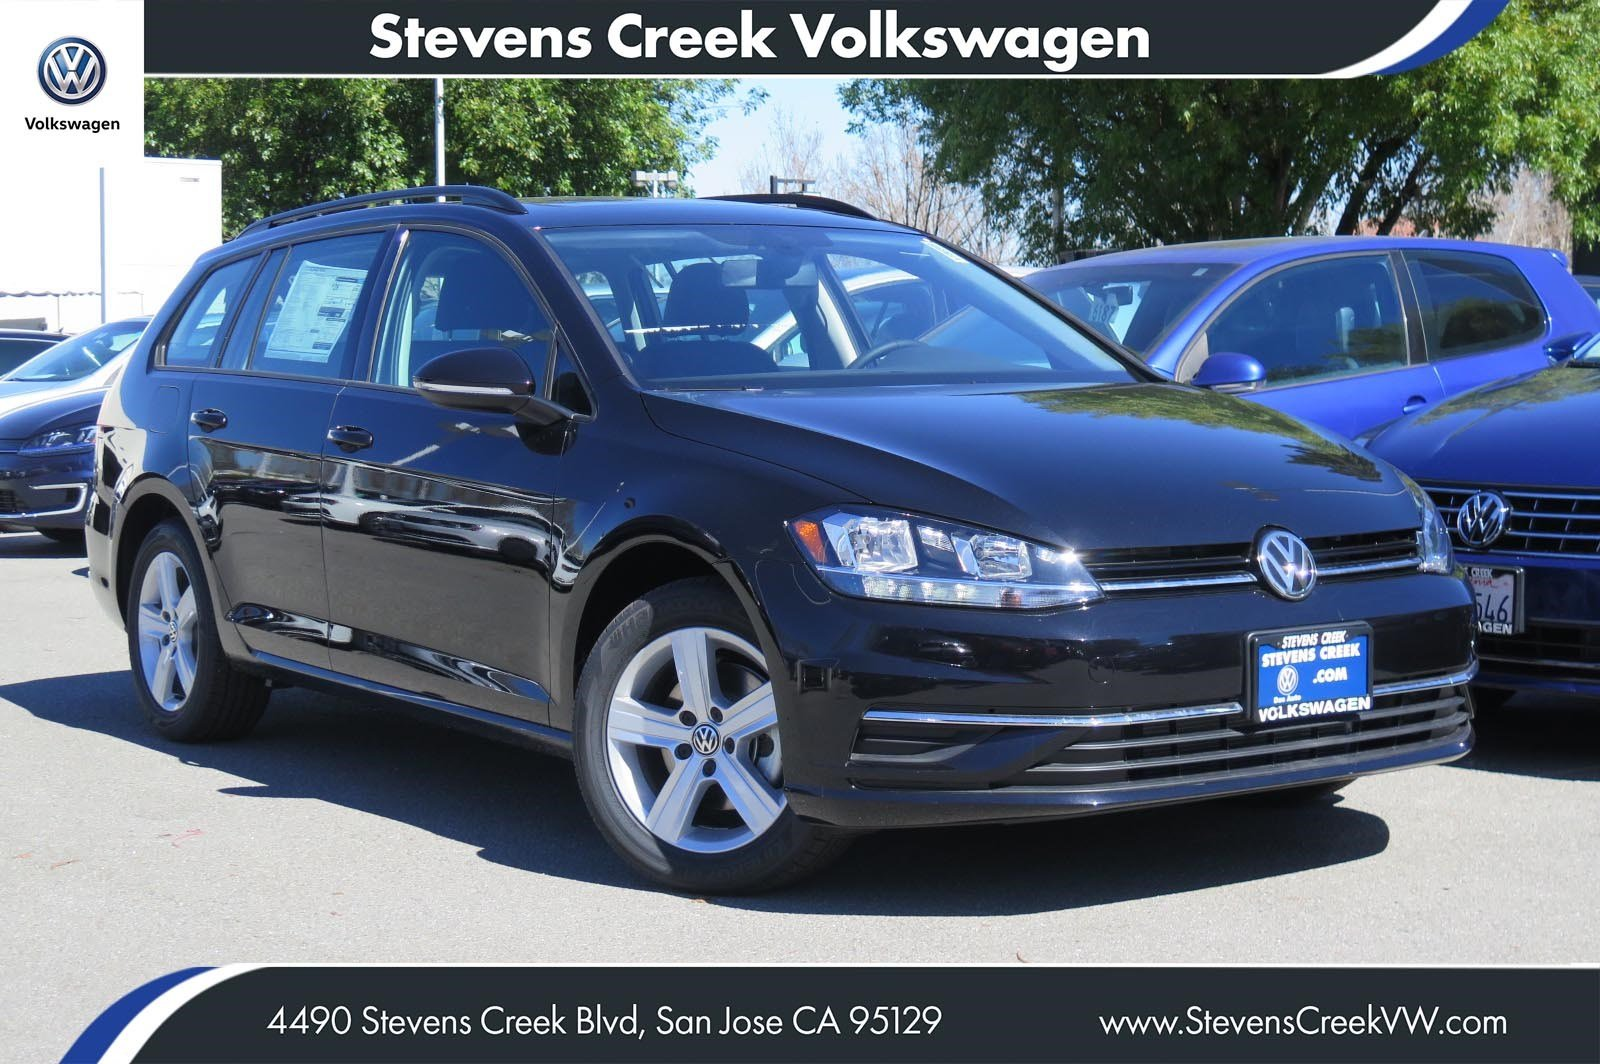 New 2018 Volkswagen Golf SportWagen SE FWD Station Wagon VIN# JM755989 MSRP $28,590